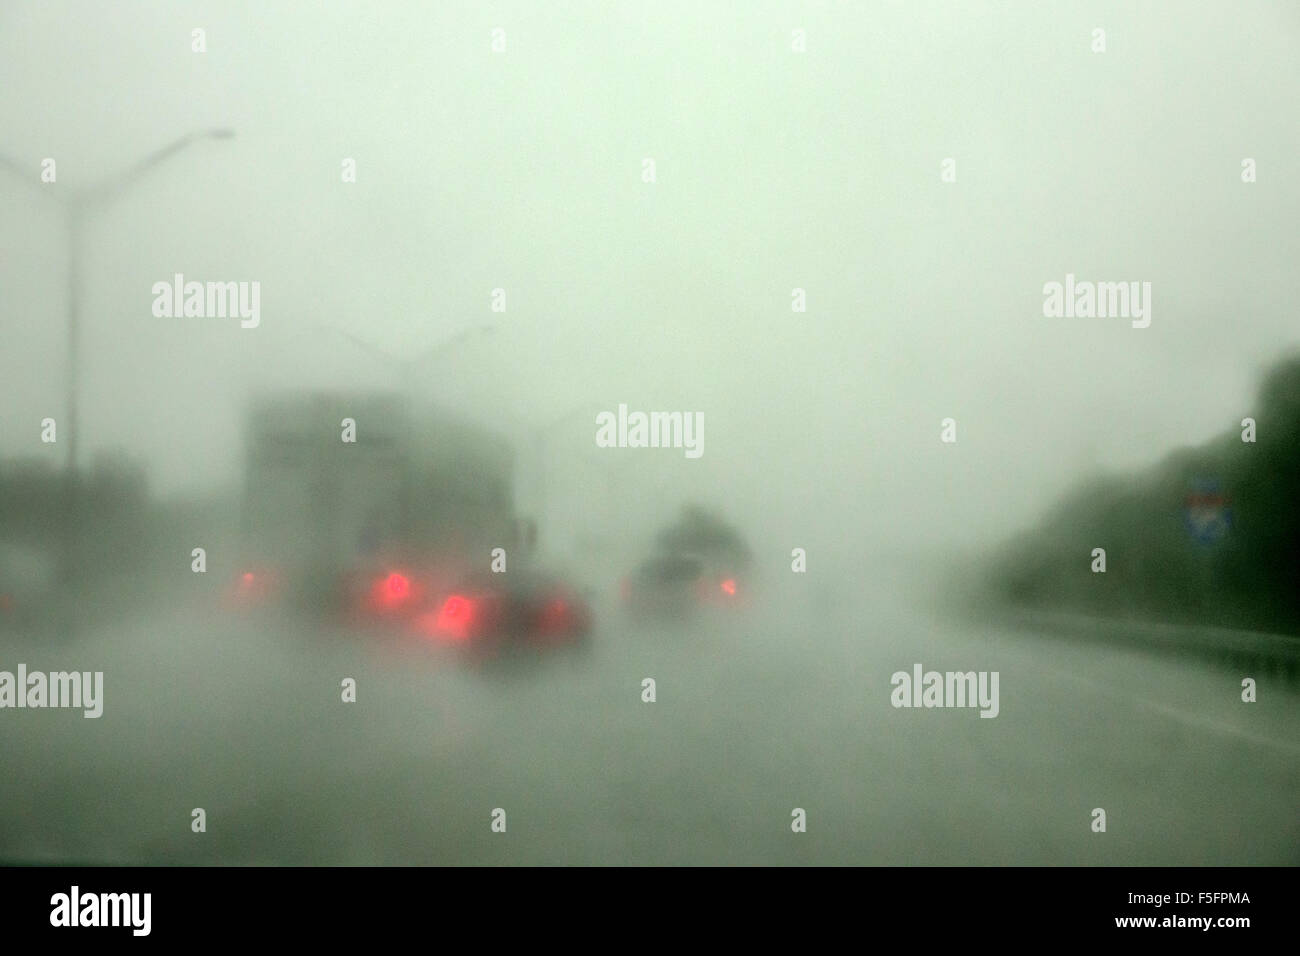 Florida Jupiter Interstate 95 I-95 view through windshield downpour heavy rainstorm traffic limited unsafe driving - Stock Image